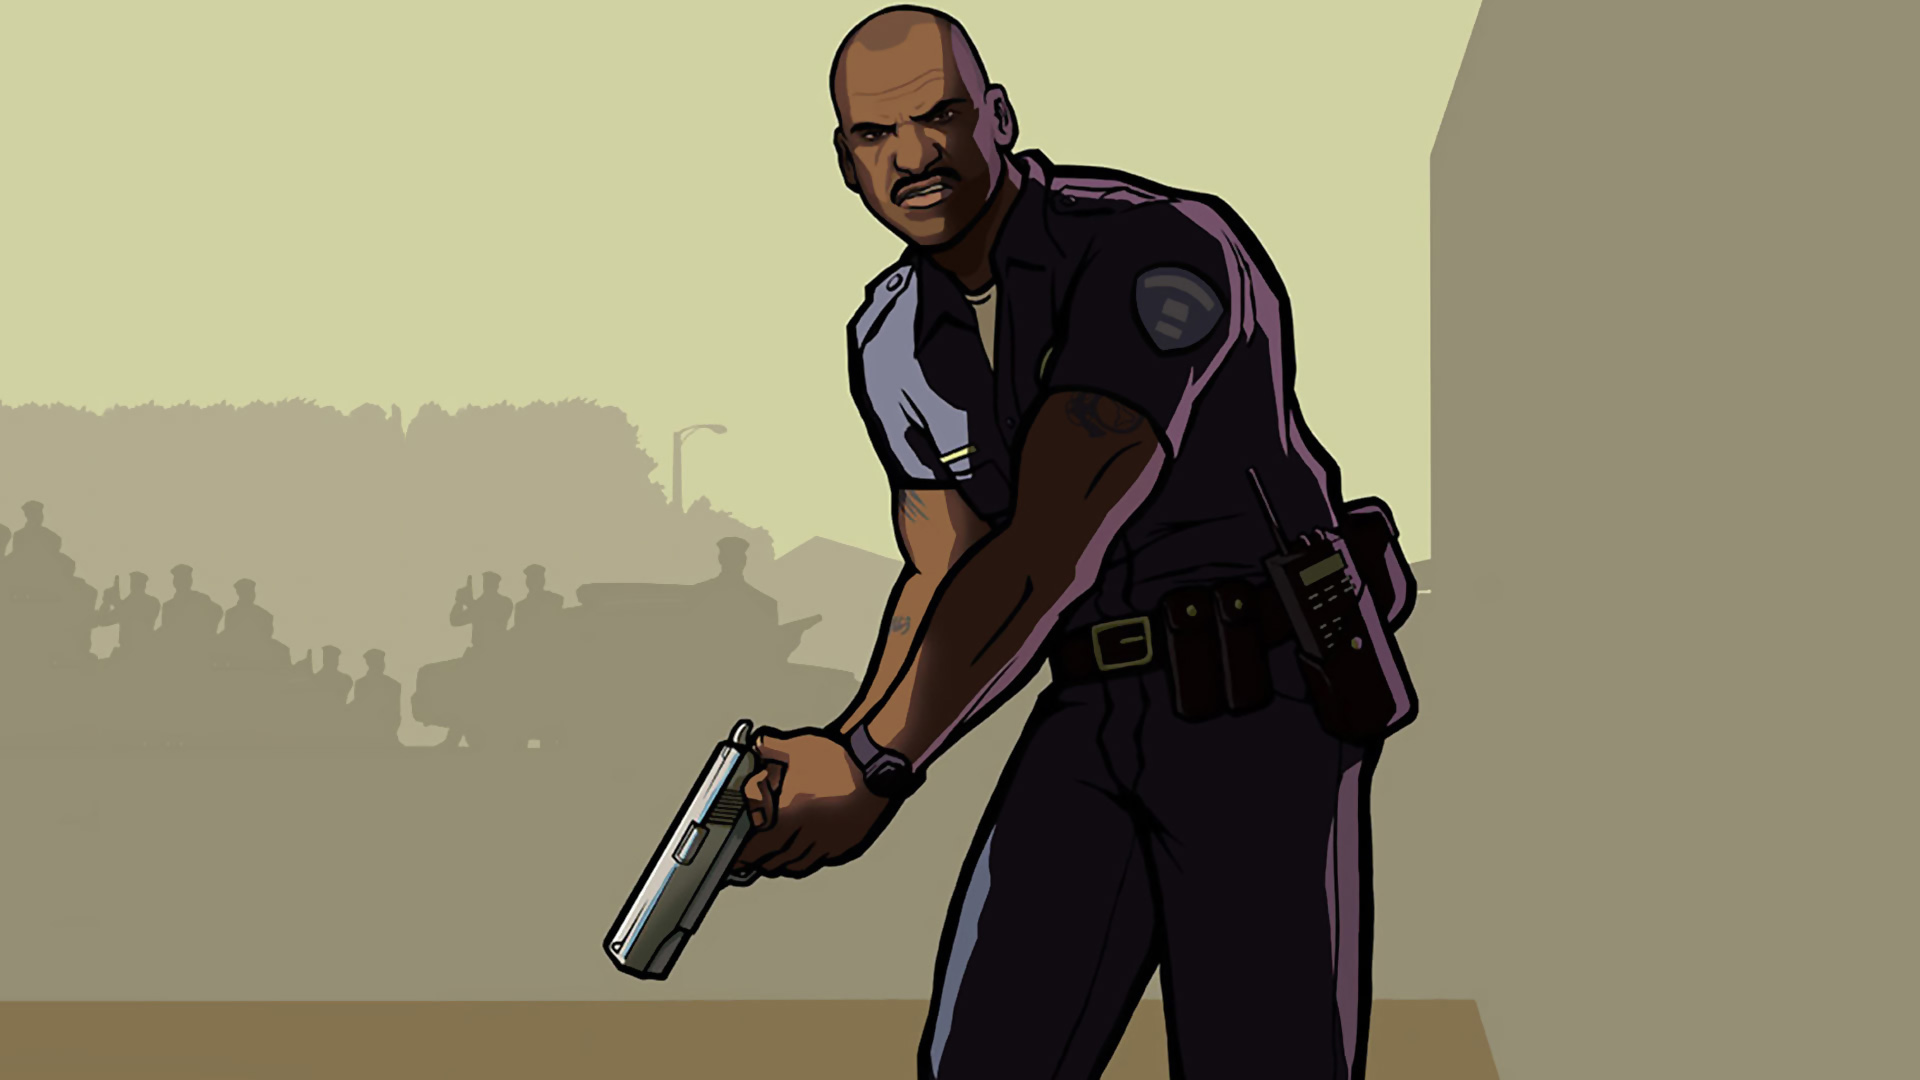 grand theft auto san andreas details launchbox games database